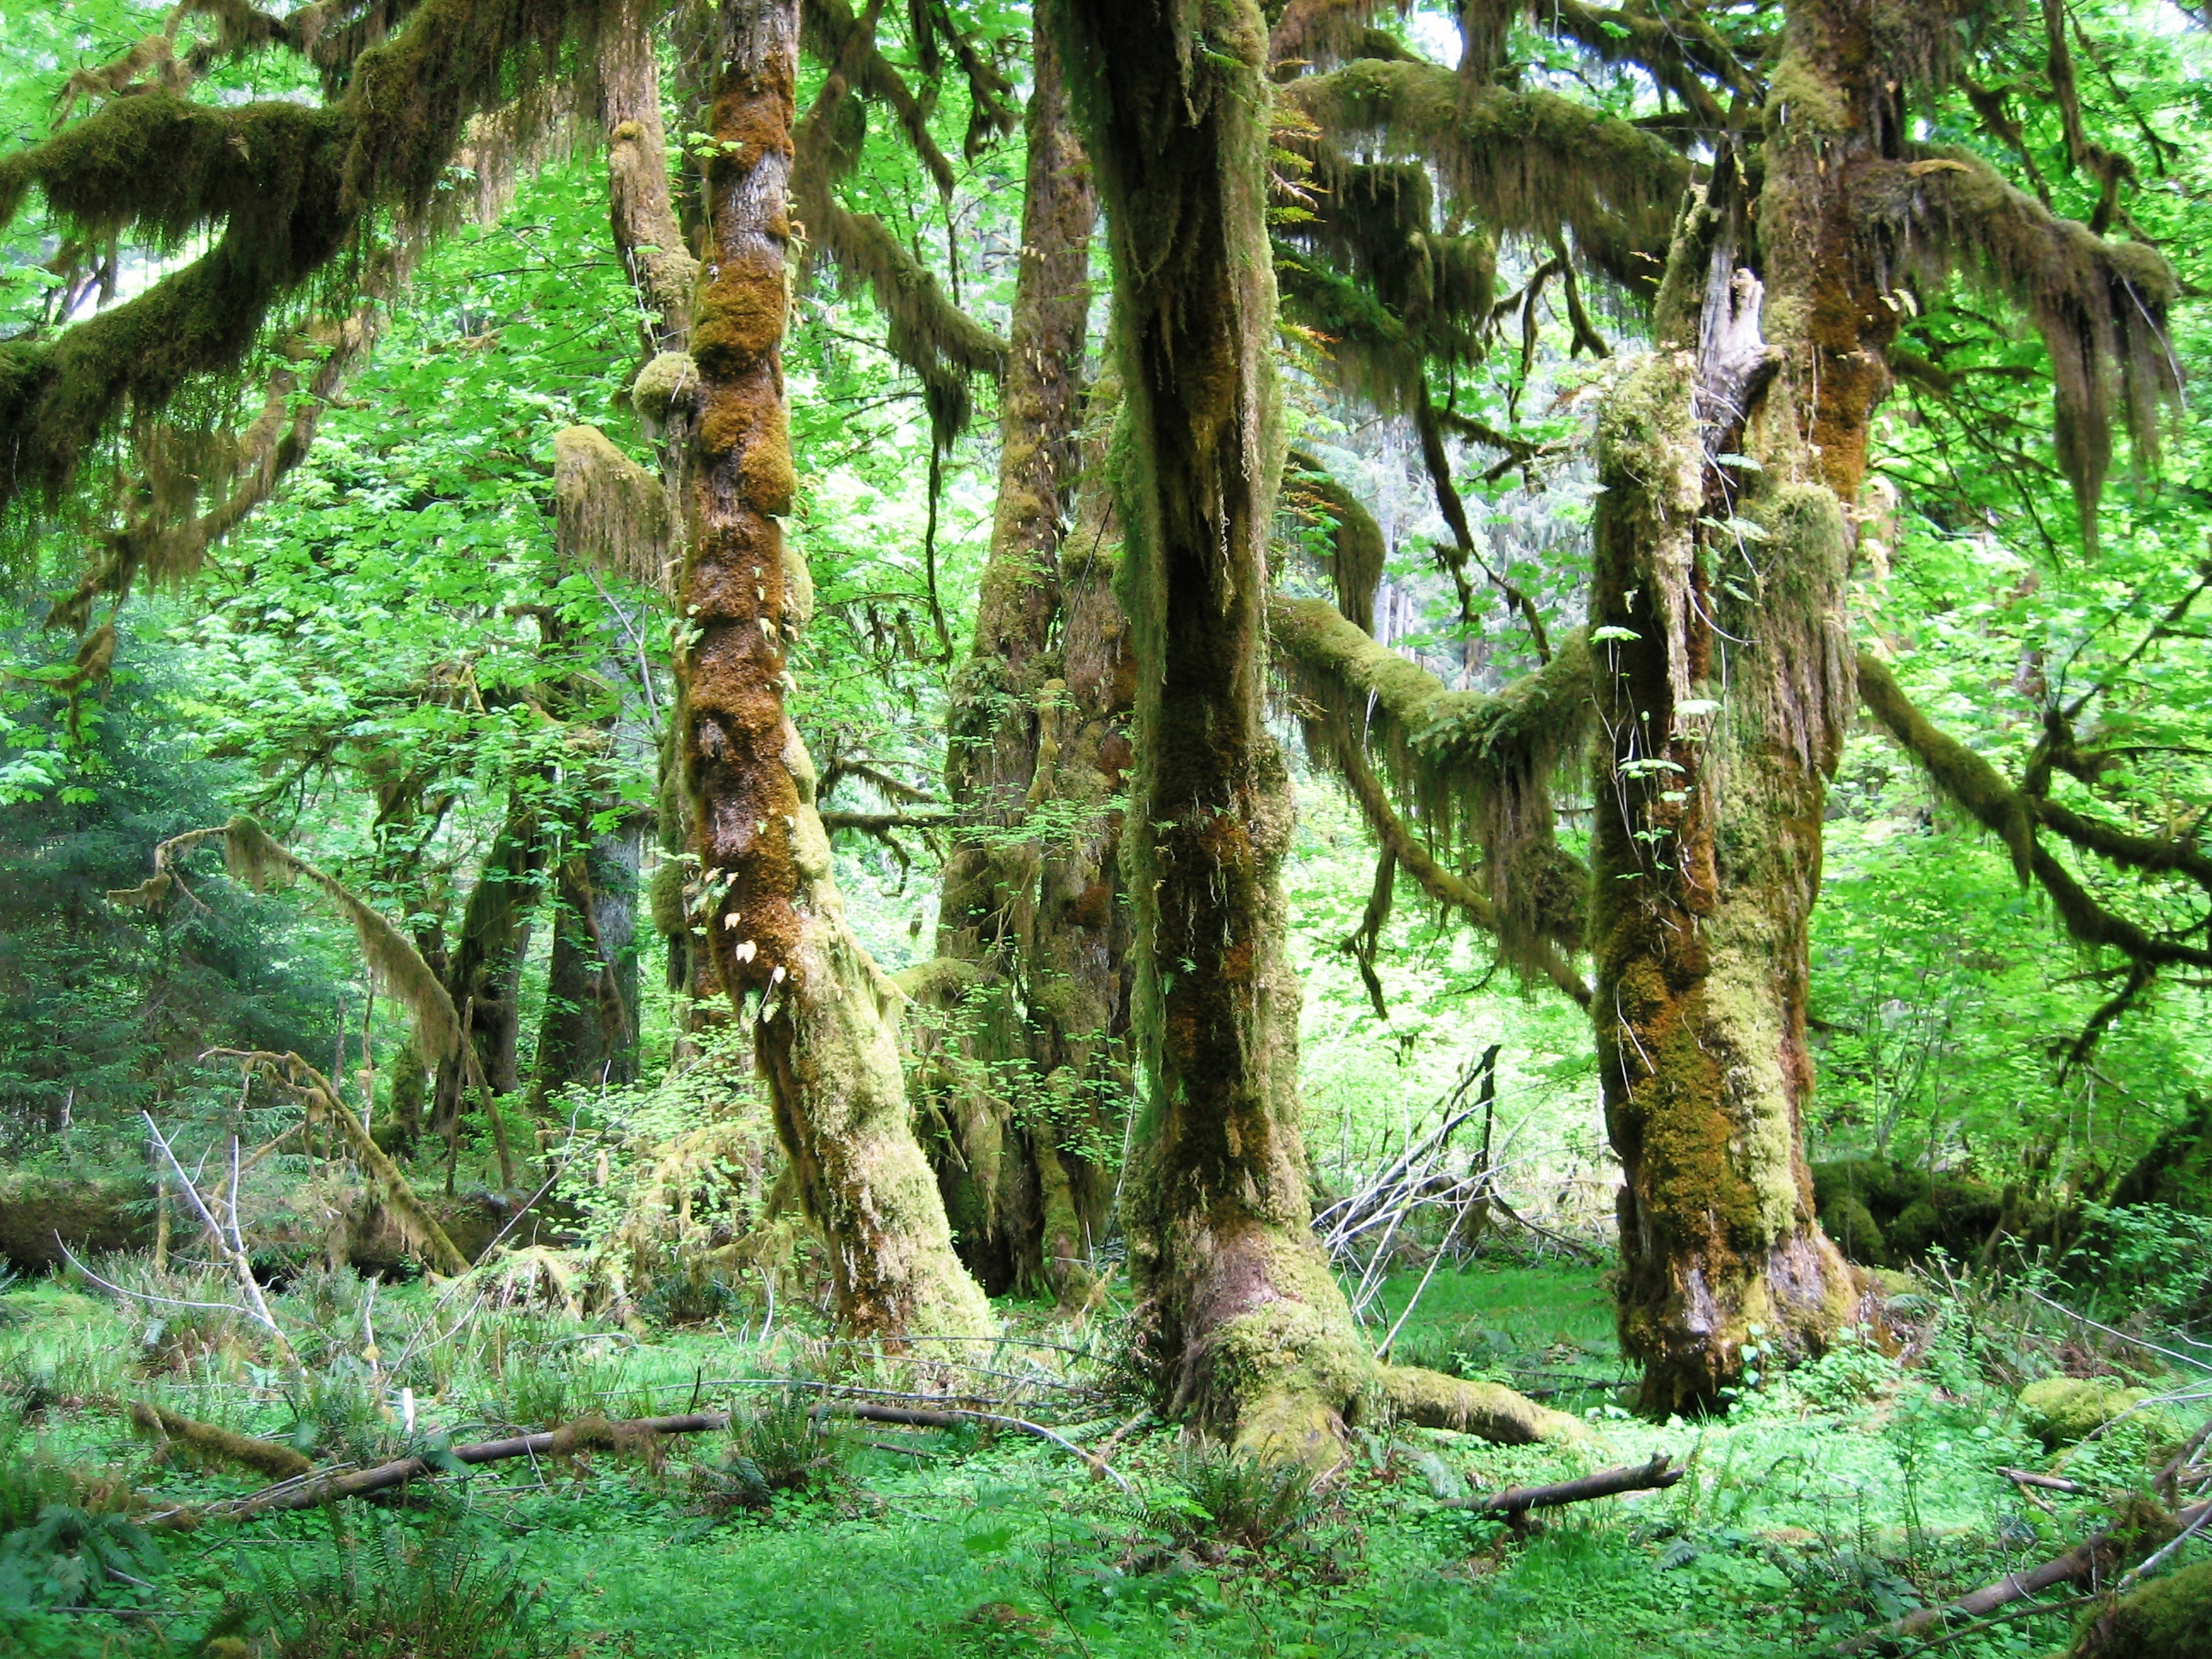 File:Hoh National Rainforest.jpg - Wikipedia